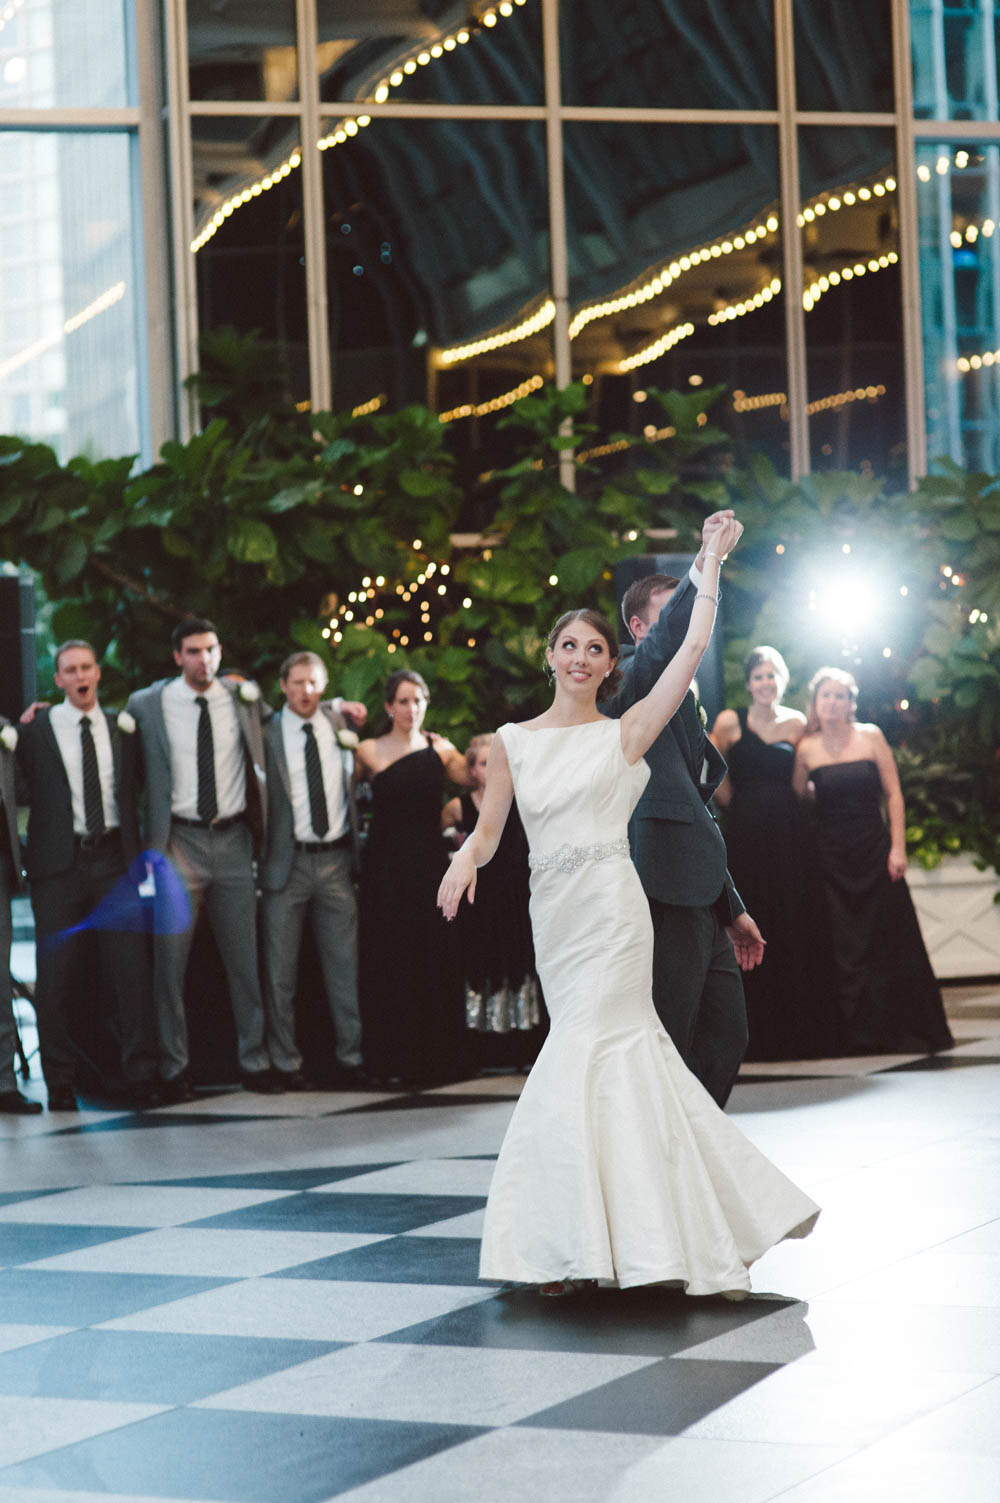 wintergarden-wedding-pittsburgh-119.jpg